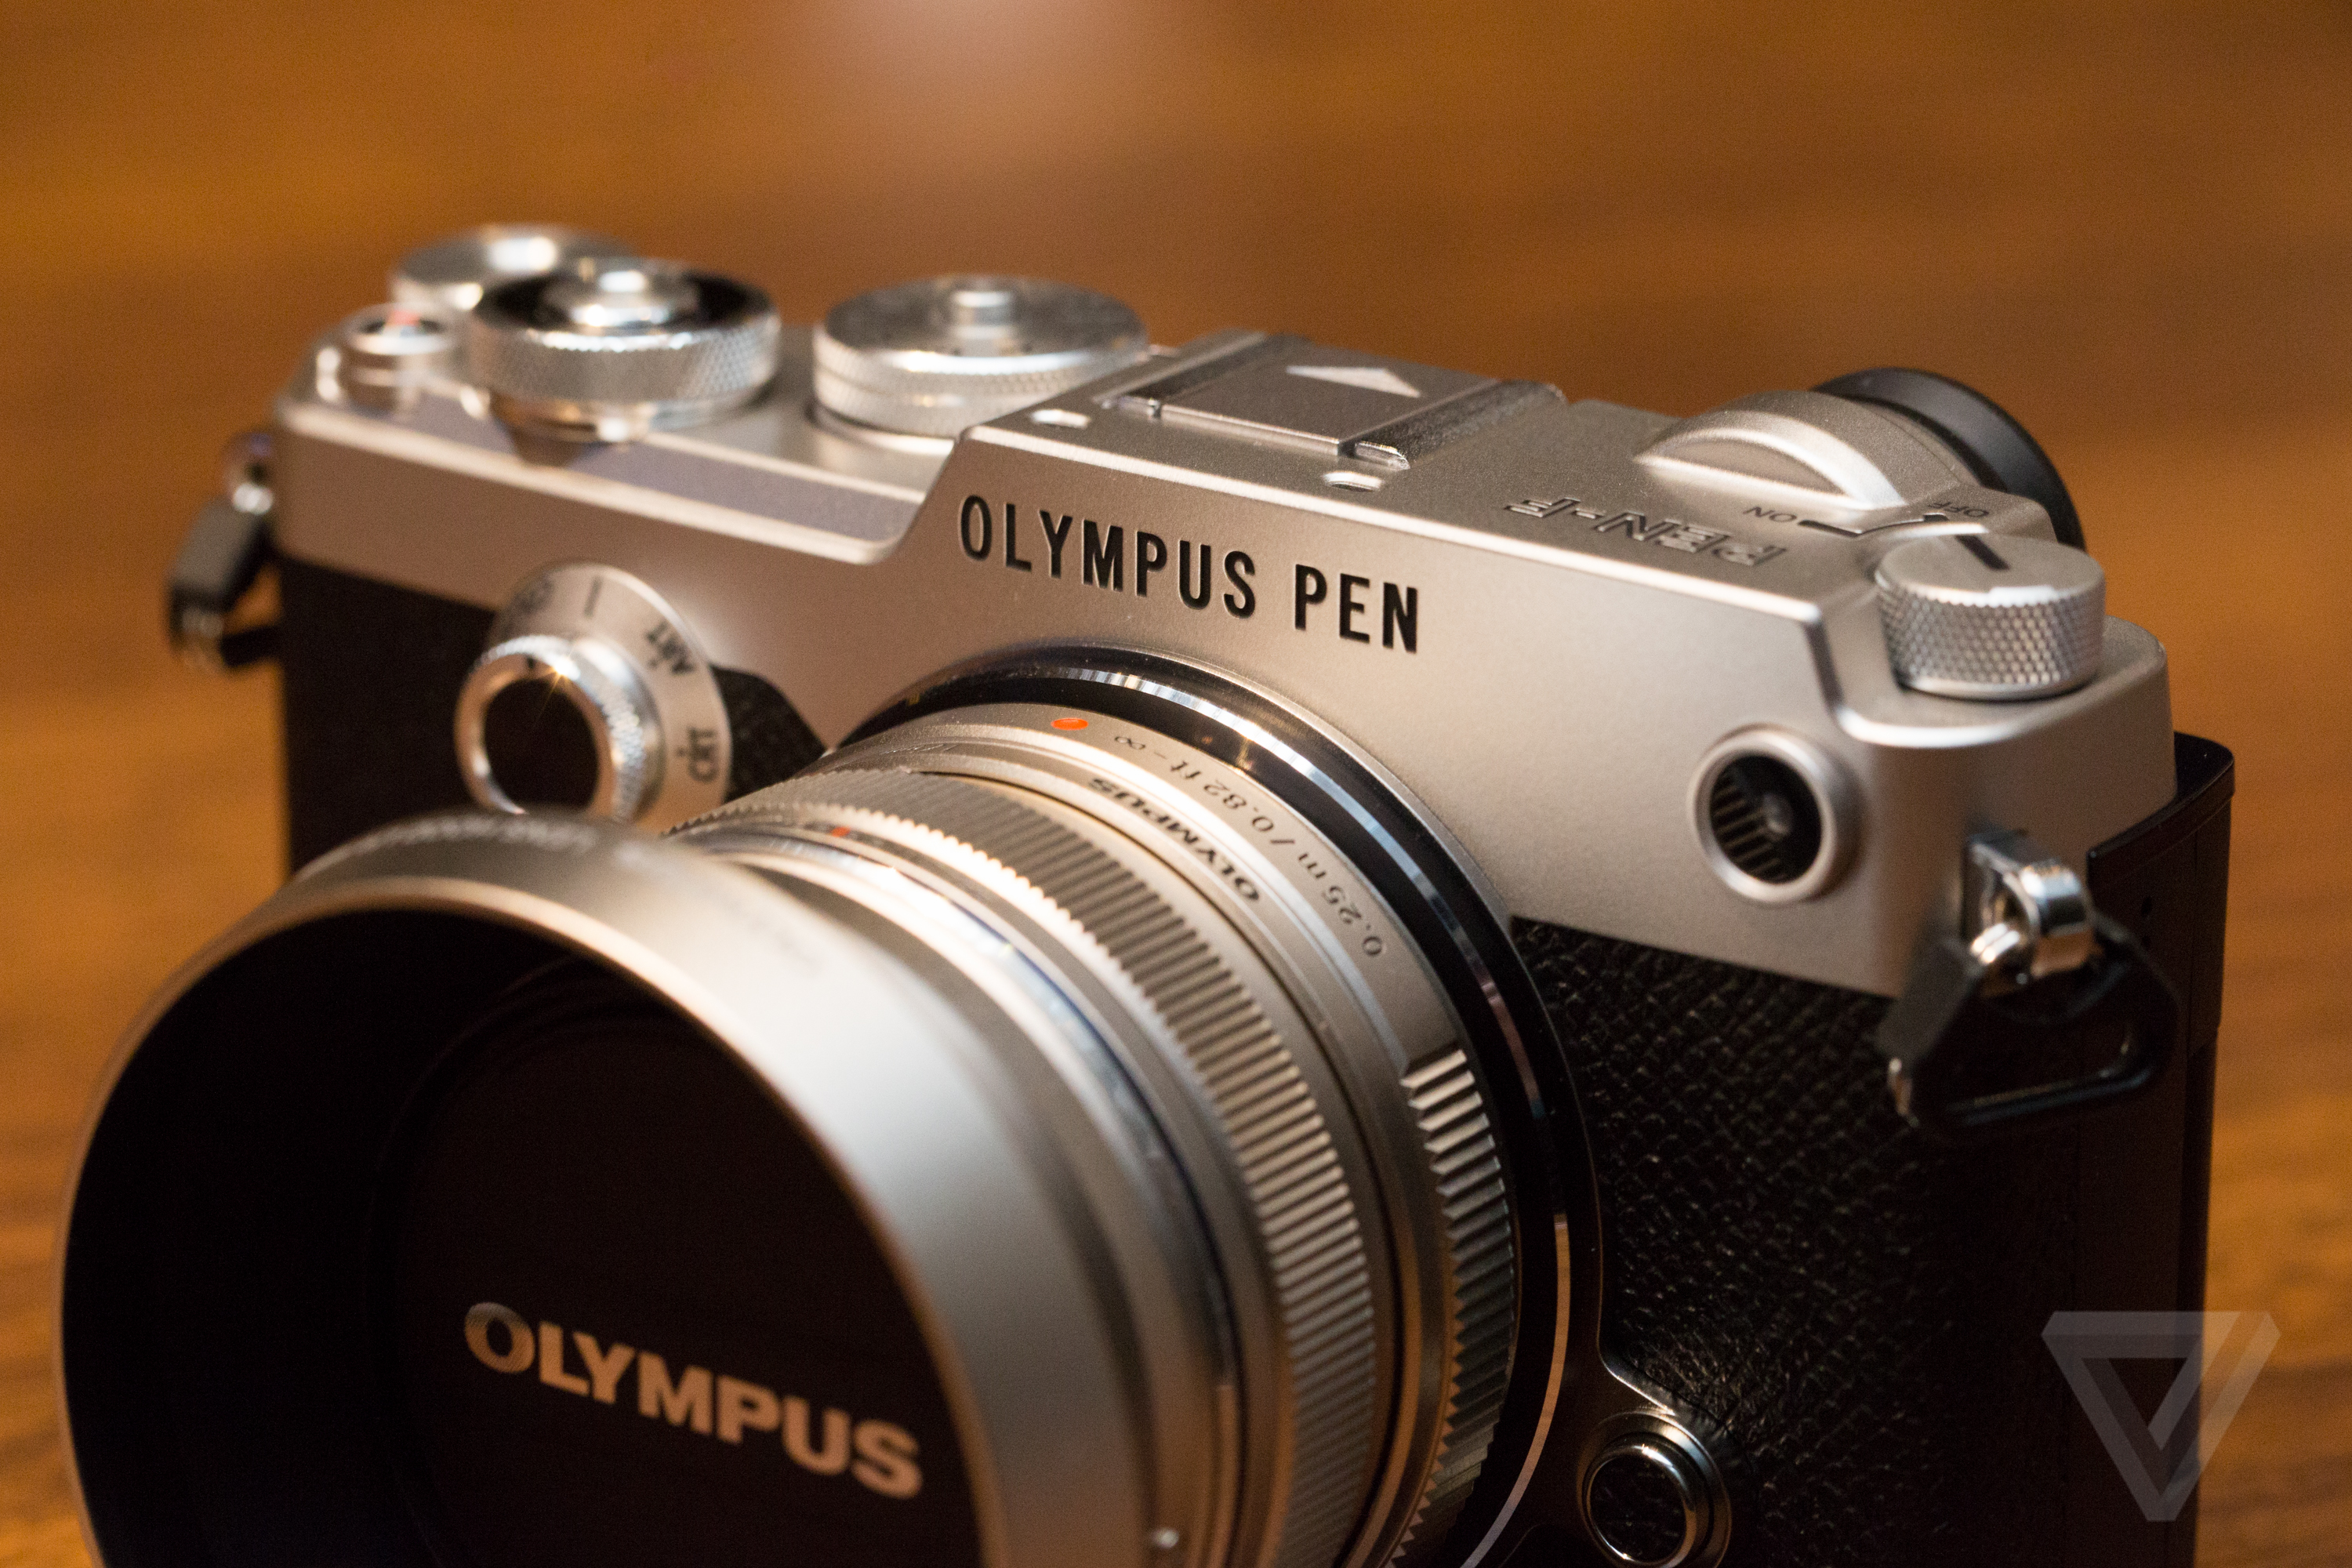 The Olympus Pen F Is A Classic Film Camera With Digital